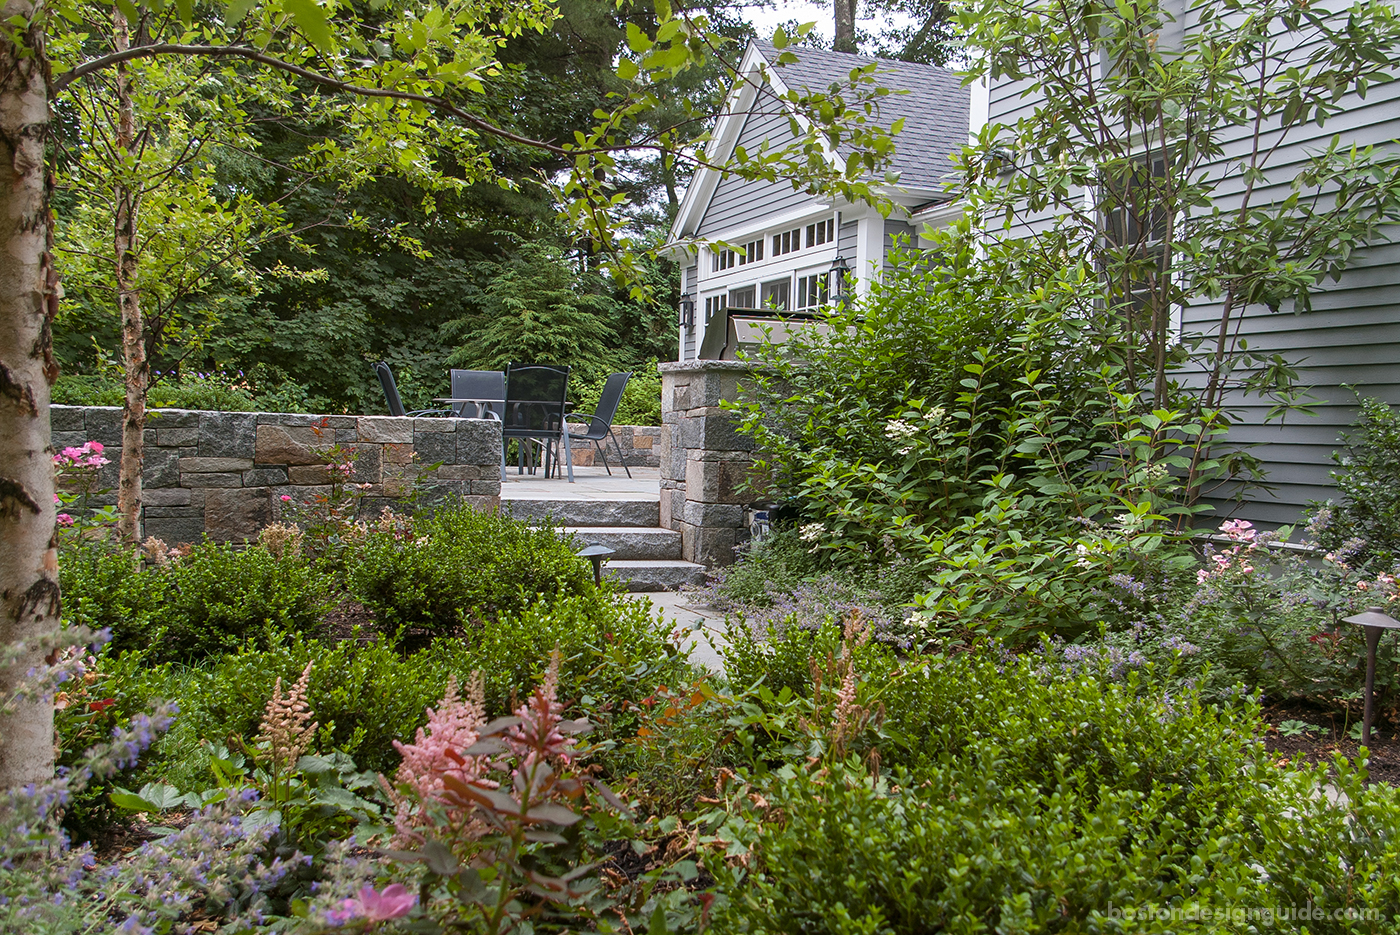 Boston landscape professionals